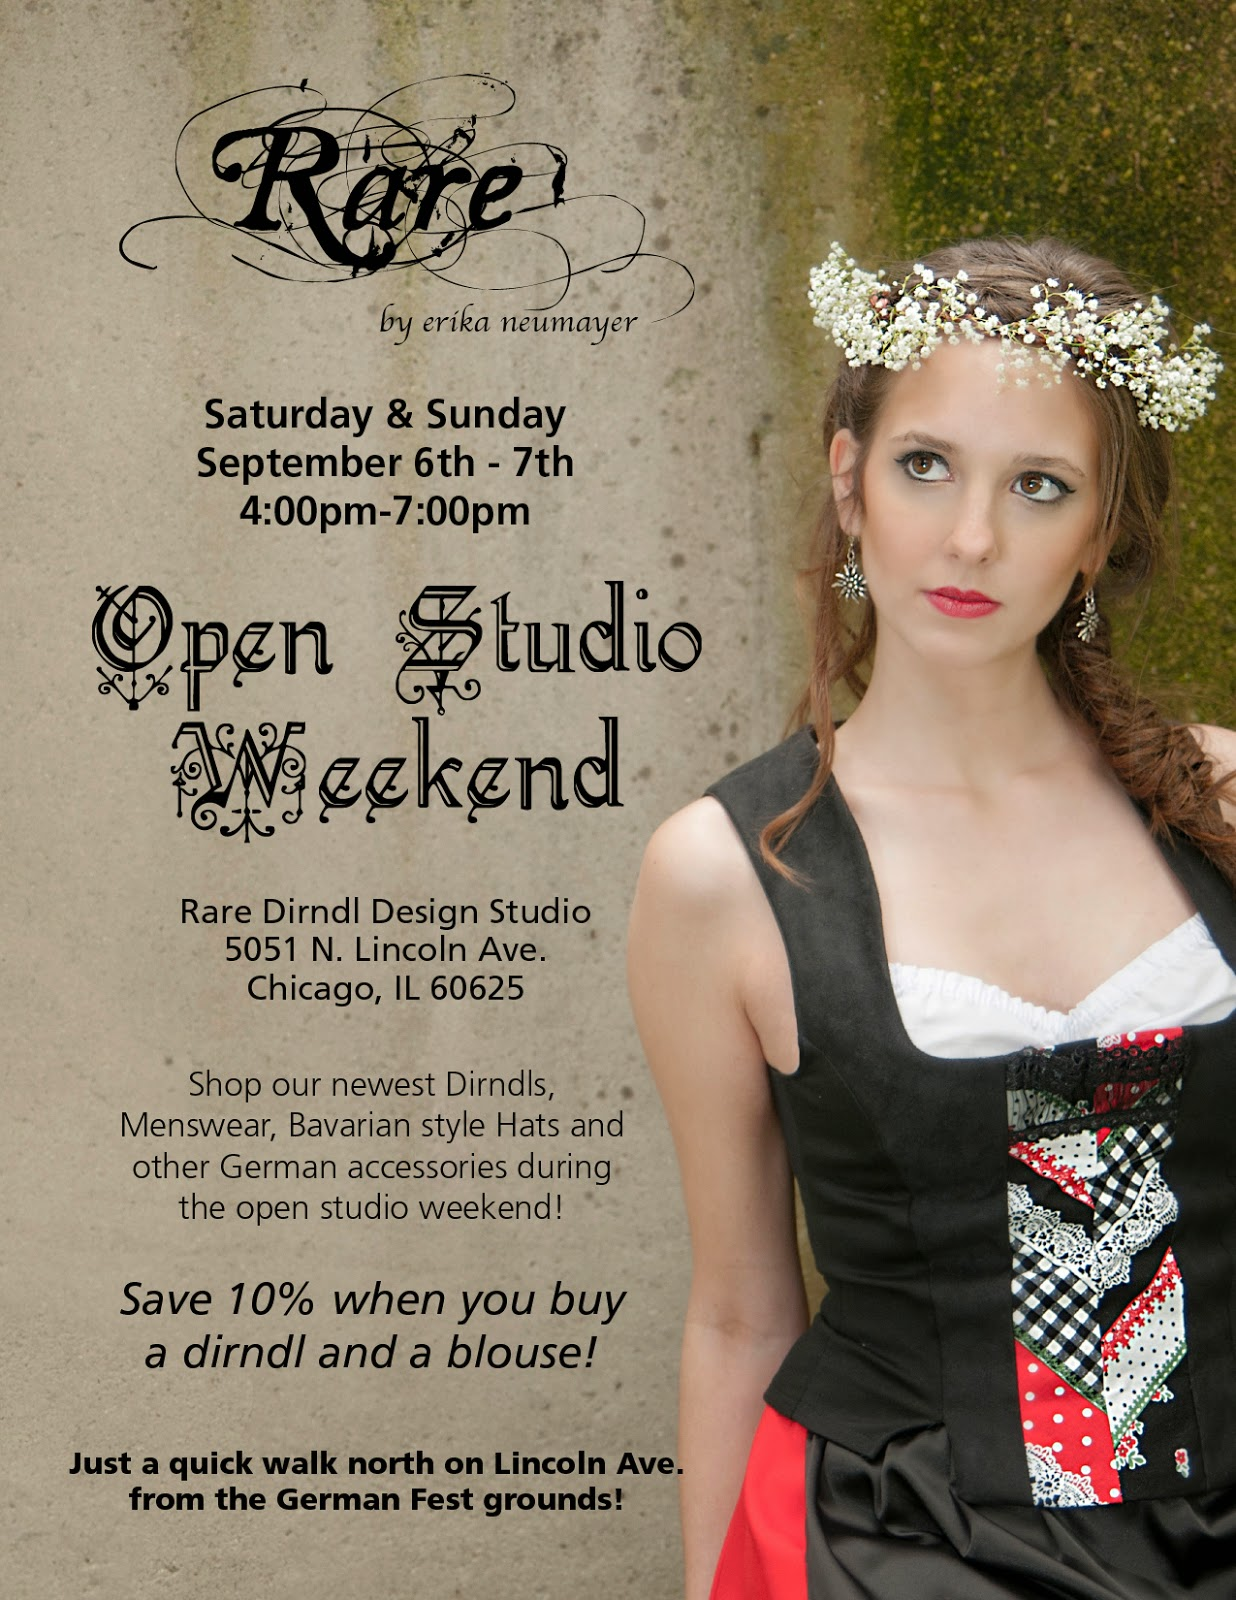 eeba1e6d0c2e0 Then Saturday and Sunday, I'll have the studio doors open and you can come  on in and shop the newest styles, fresh accessories and snatch up the last  of our ...